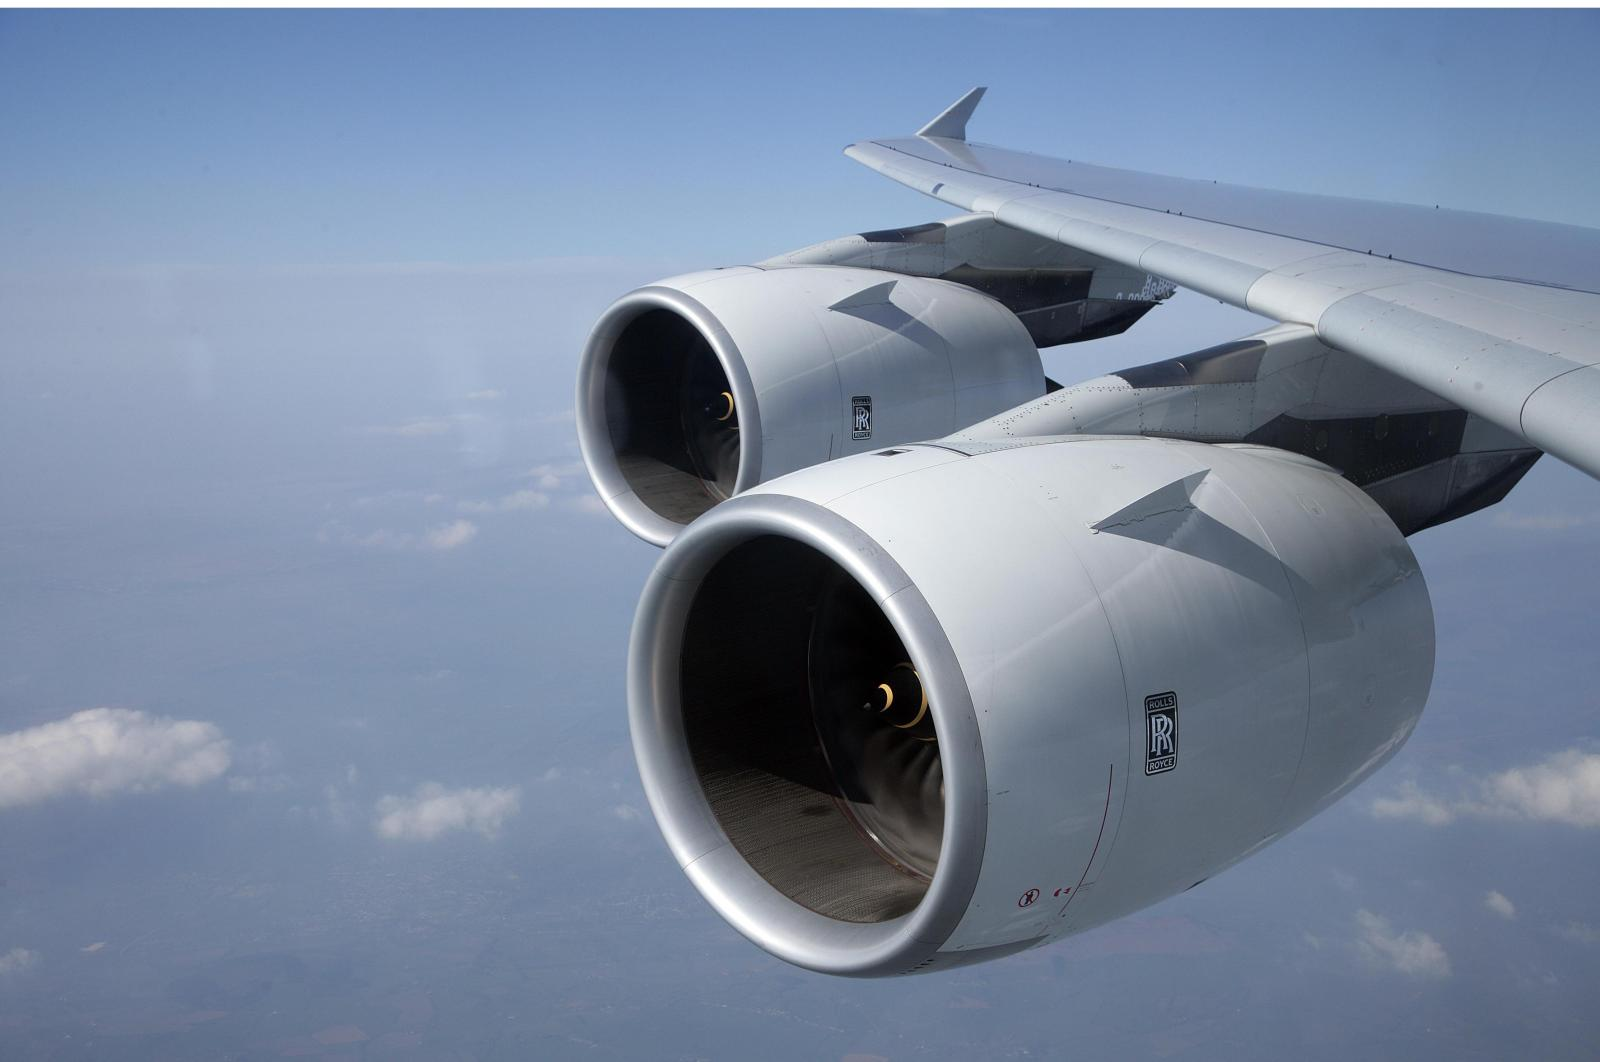 The Trent 900 powers the Airbus A380